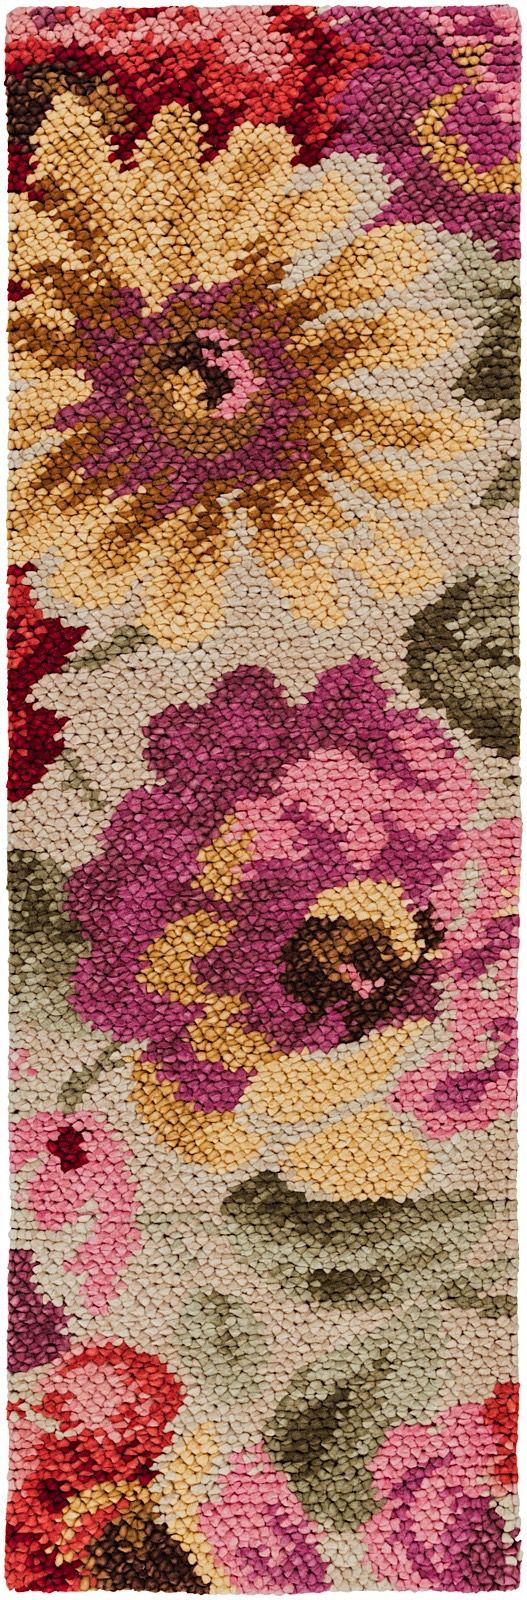 surya spring bloom country & floral area rug collection